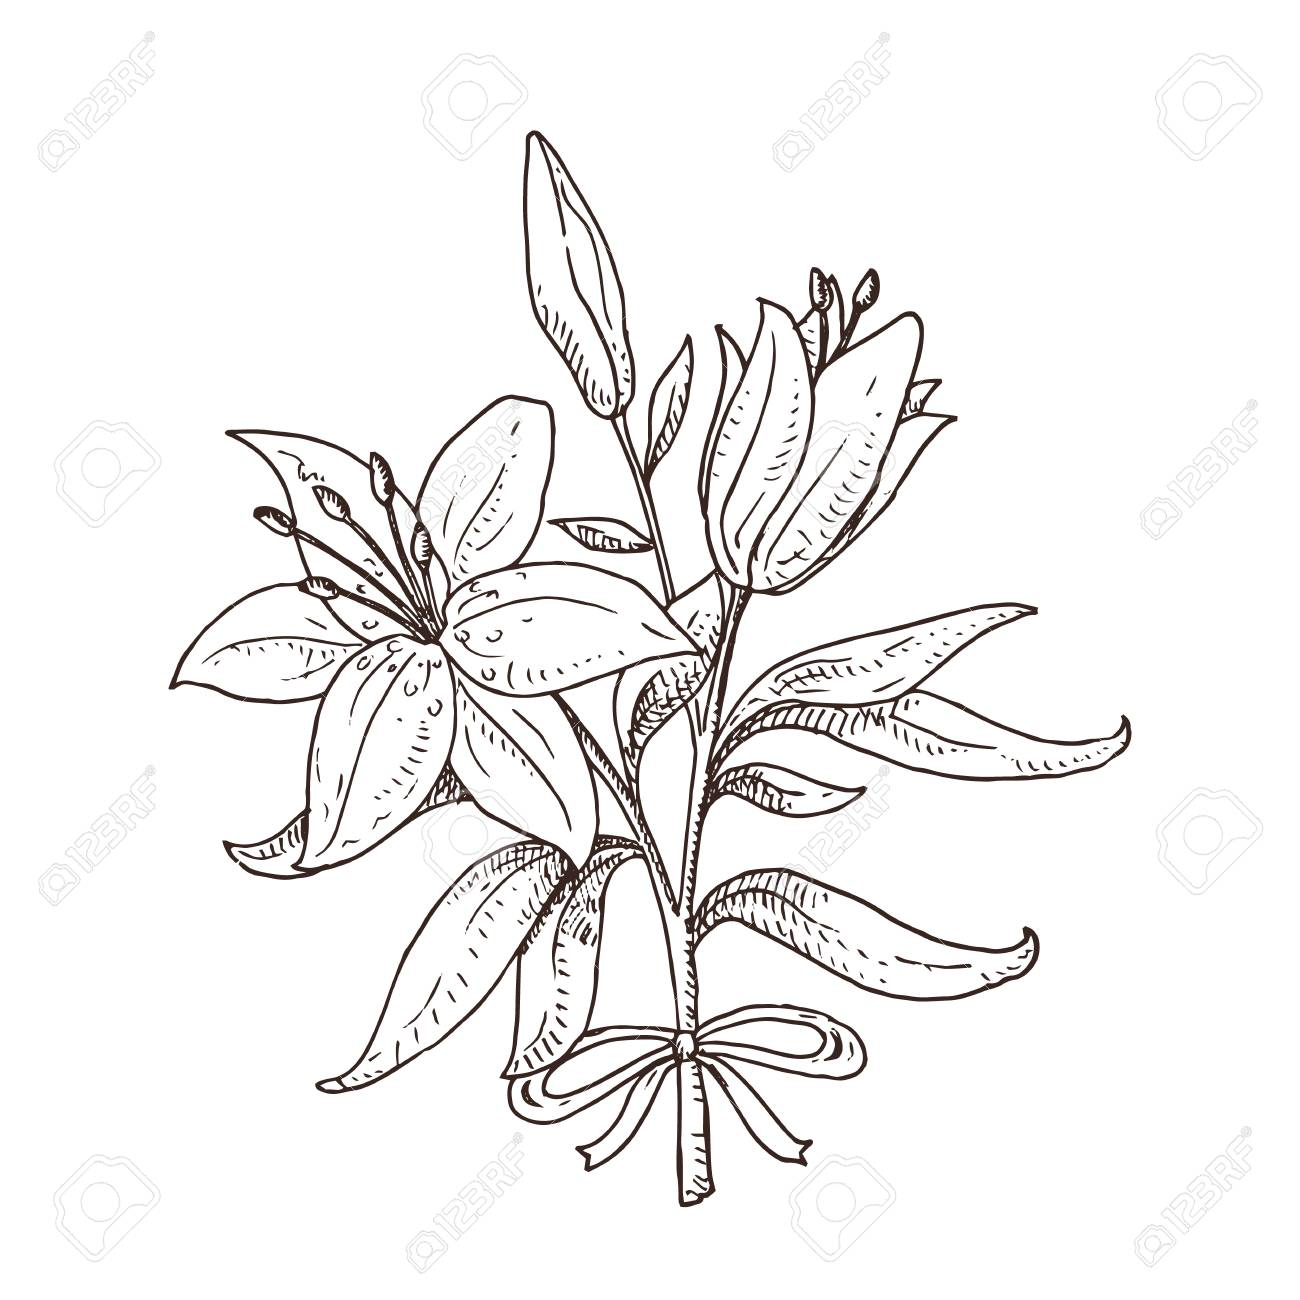 Black And White Hand Drawn Lily Bouquet Beautiful Flowers Spring Royalty Free Cliparts Vectors And Stock Illustration Image 100678841,Personalized Gift Ideas For Girls